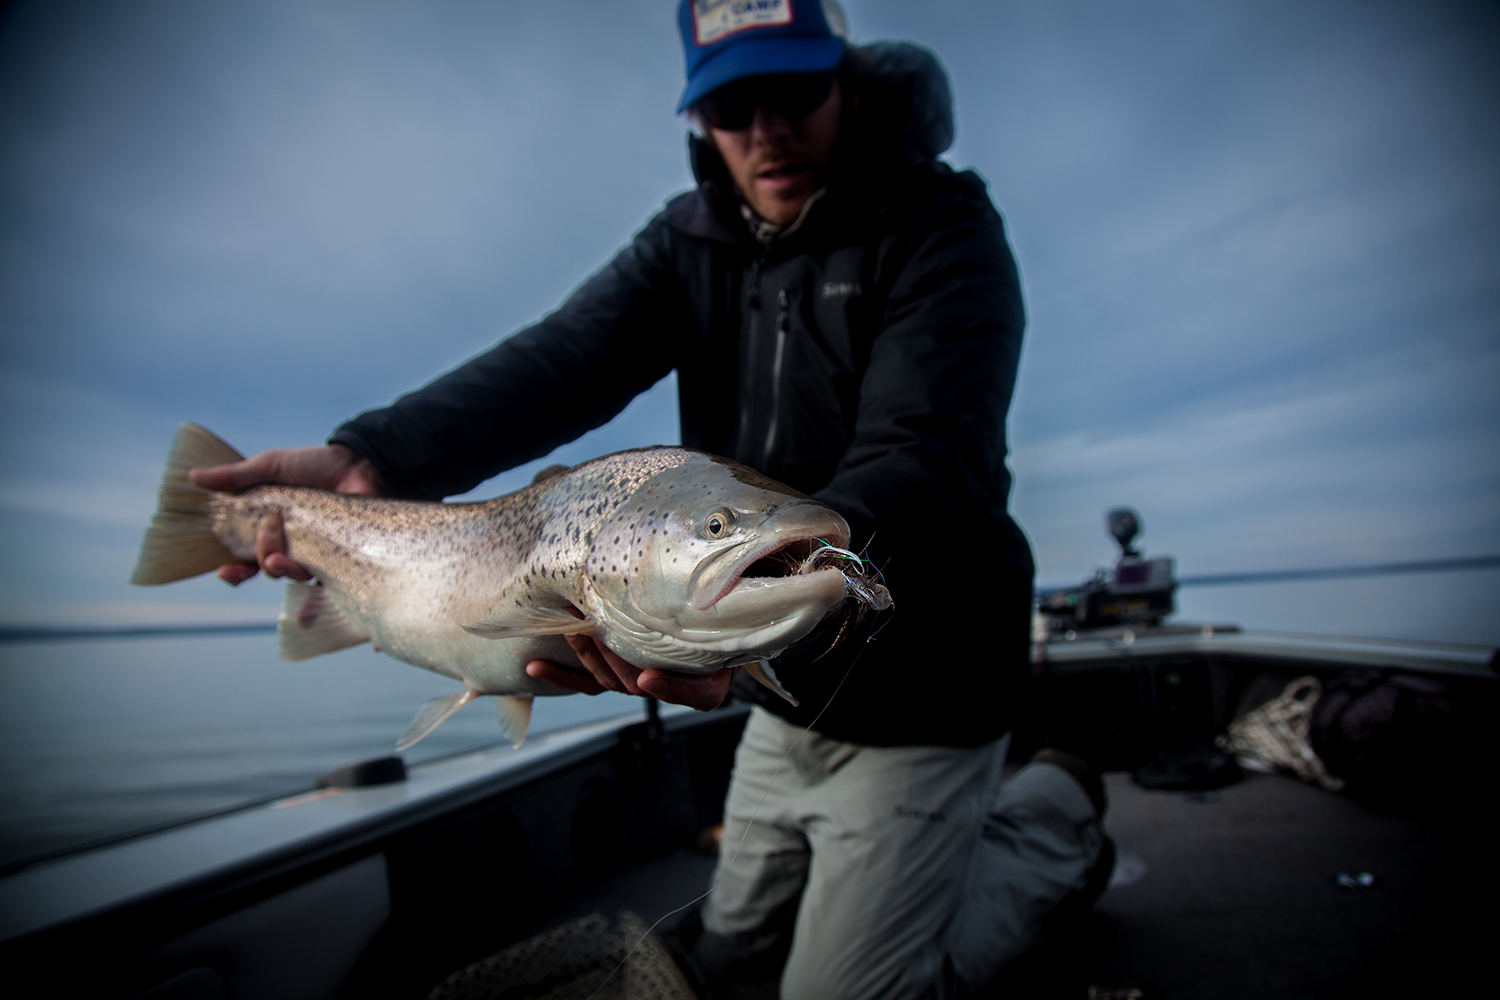 Lots of big browns around right now. The late season is some of the best fishing of the year on the big lake.